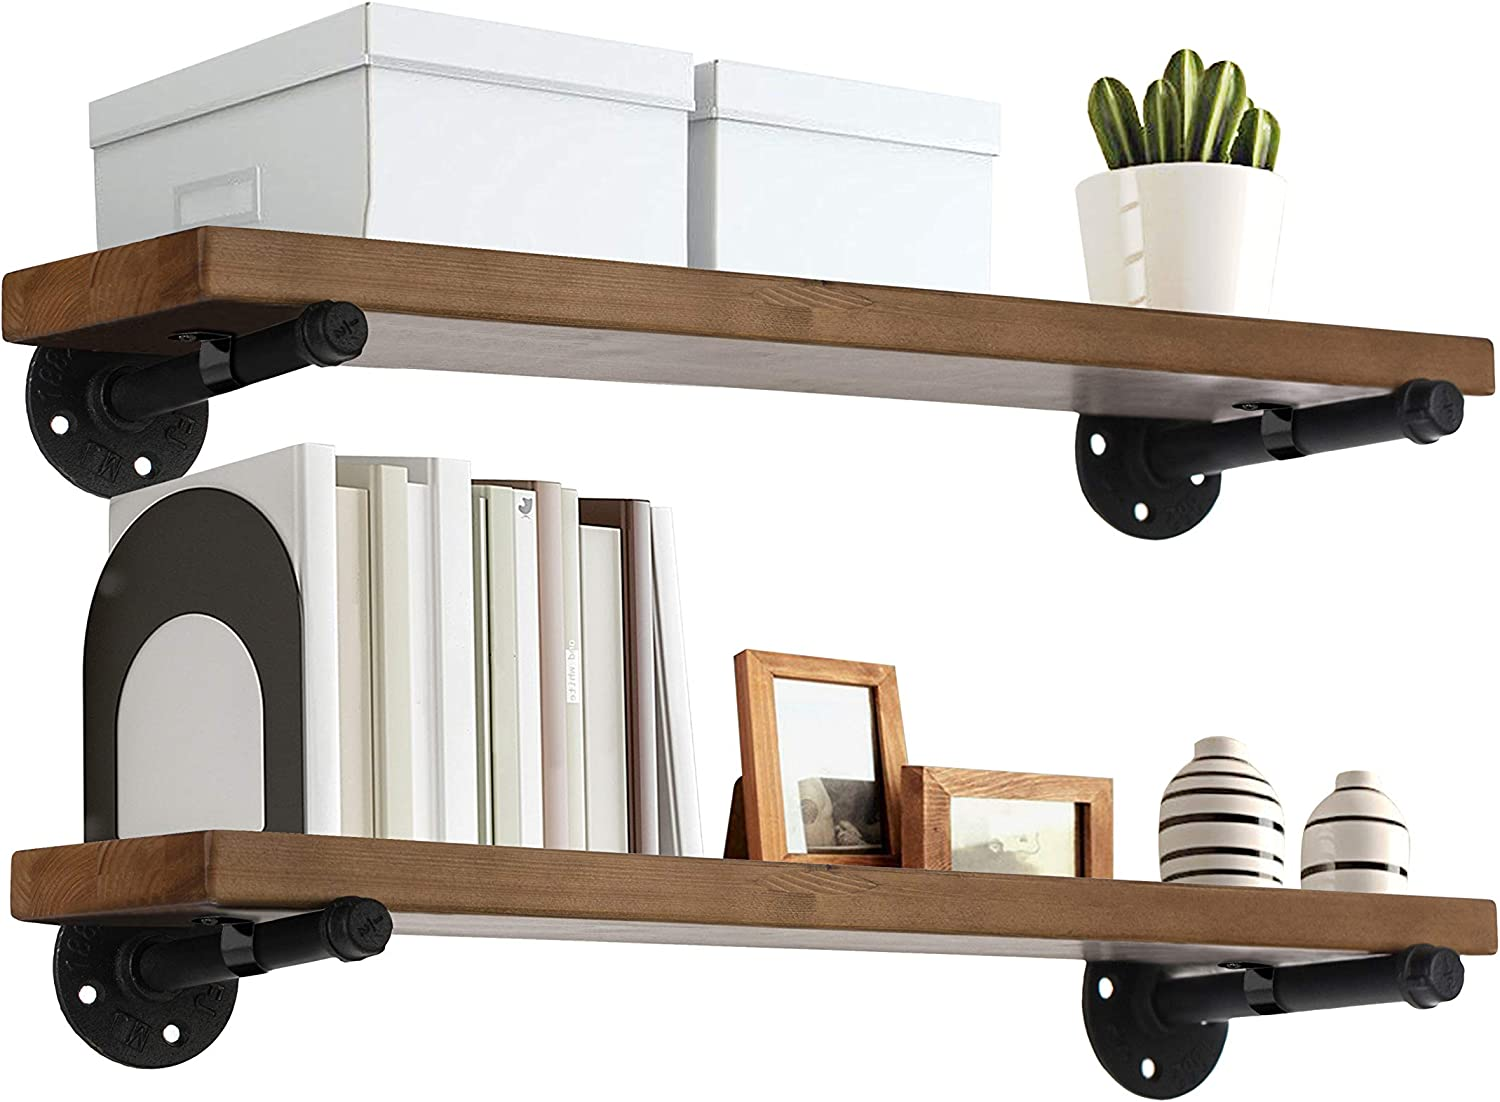 """TEN49 Industrial Wood Shelf - 24"""" Espresso Rustic Wooden Wall Shelves with Iron Pipes - Contemporary Interior Decor Floating Shelving with Pipe Brackets - Farmhouse Style Bookshelf Set of 2"""